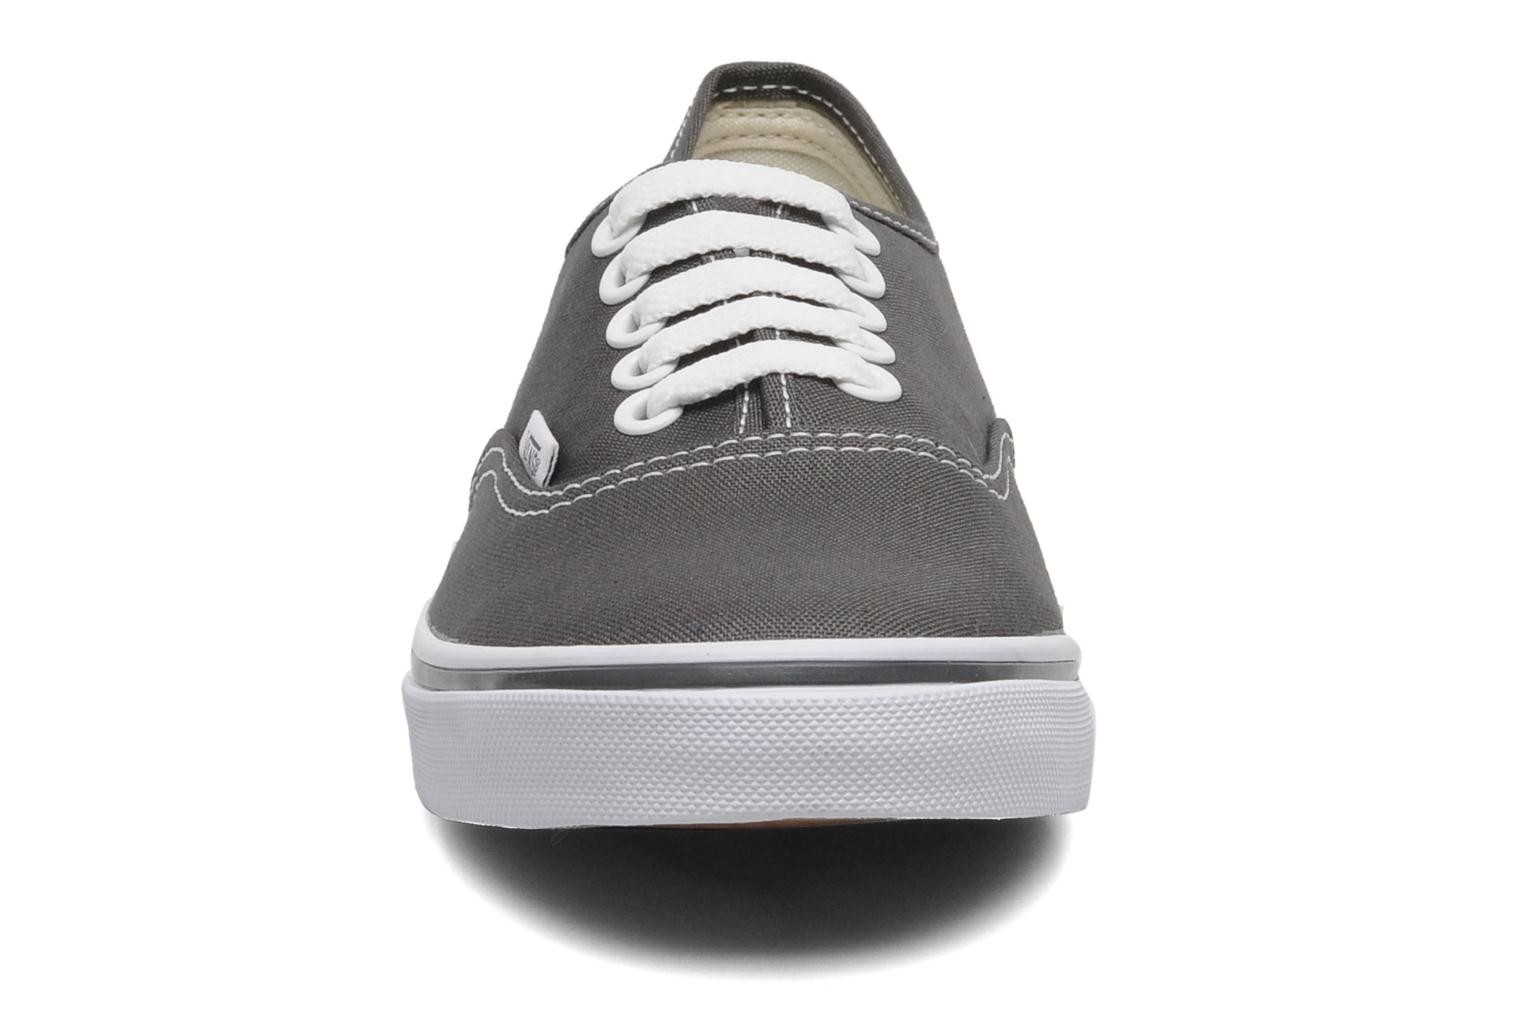 Authentic Lo Pro W Pewter/true white